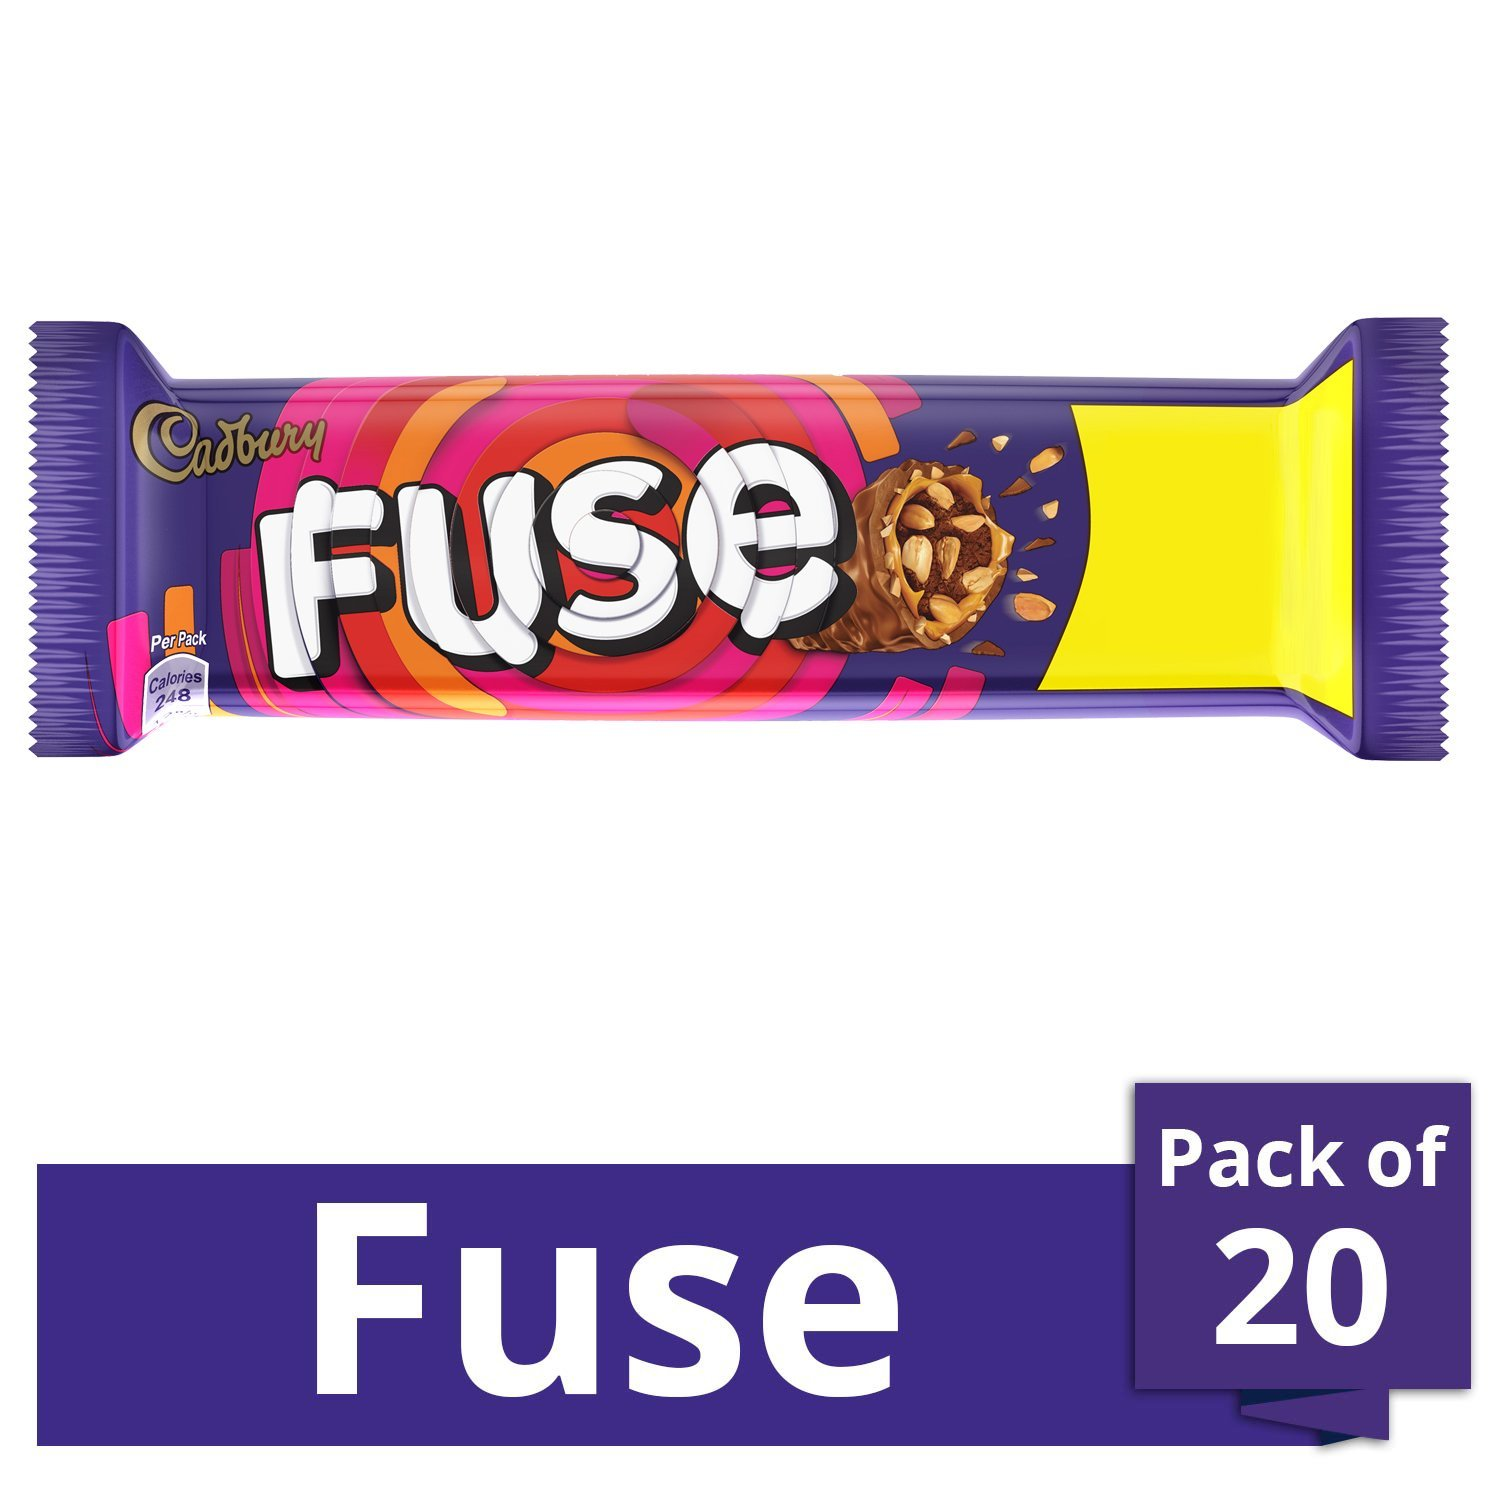 Cadbury Fuse Chocolate Bar, 45 g(Pack of 20): Amazon.in: Grocery & Gourmet  Foods